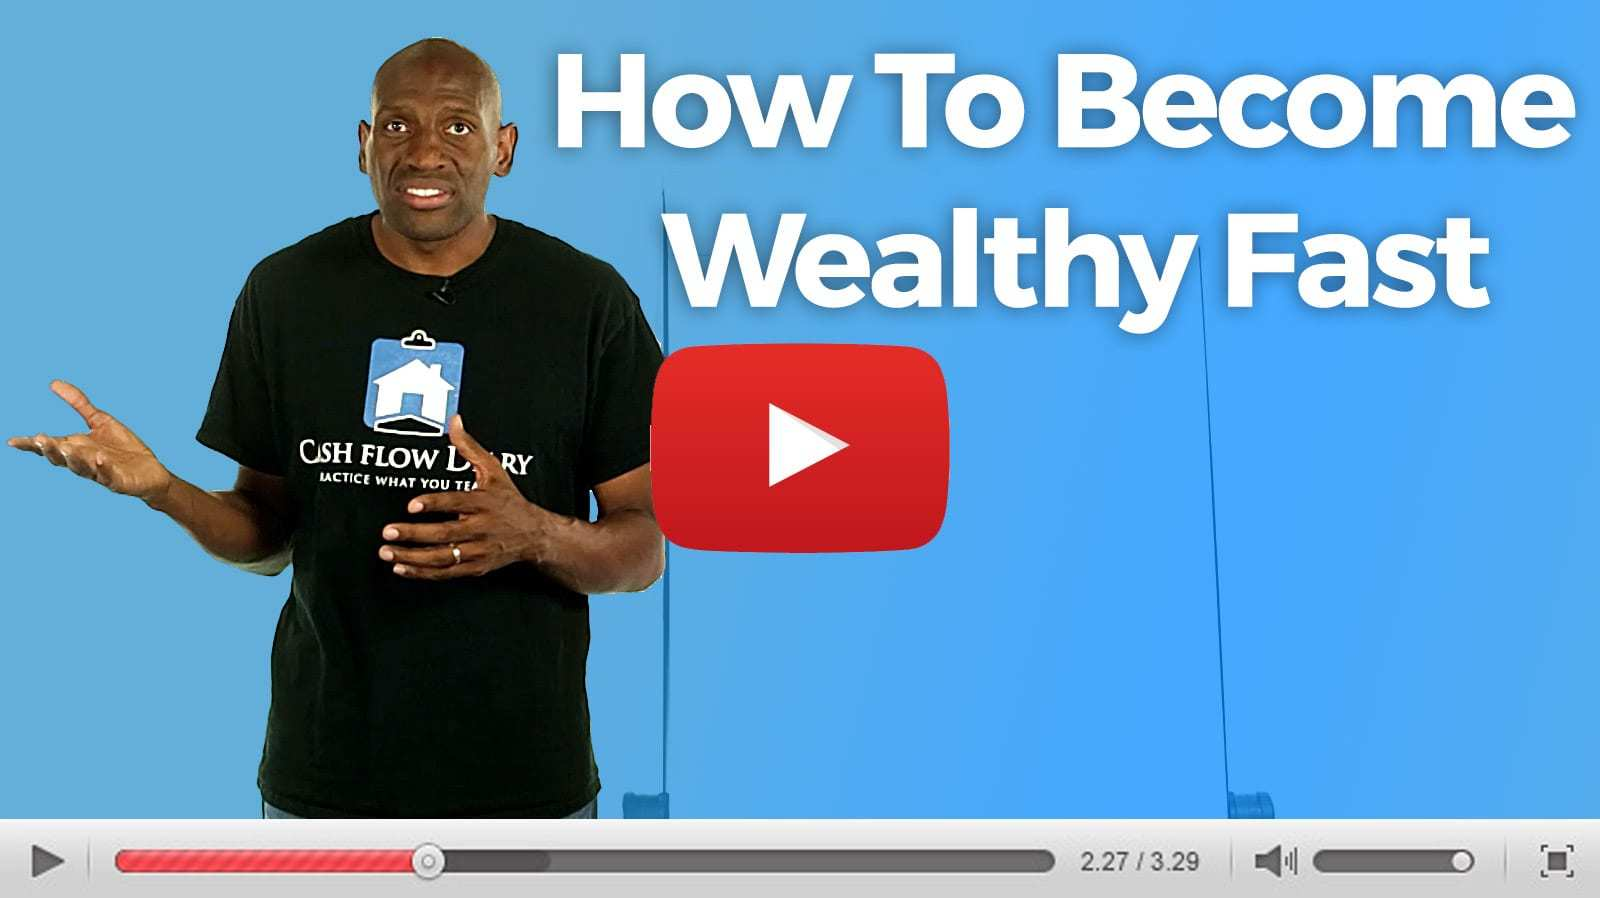 I want to become wealthy